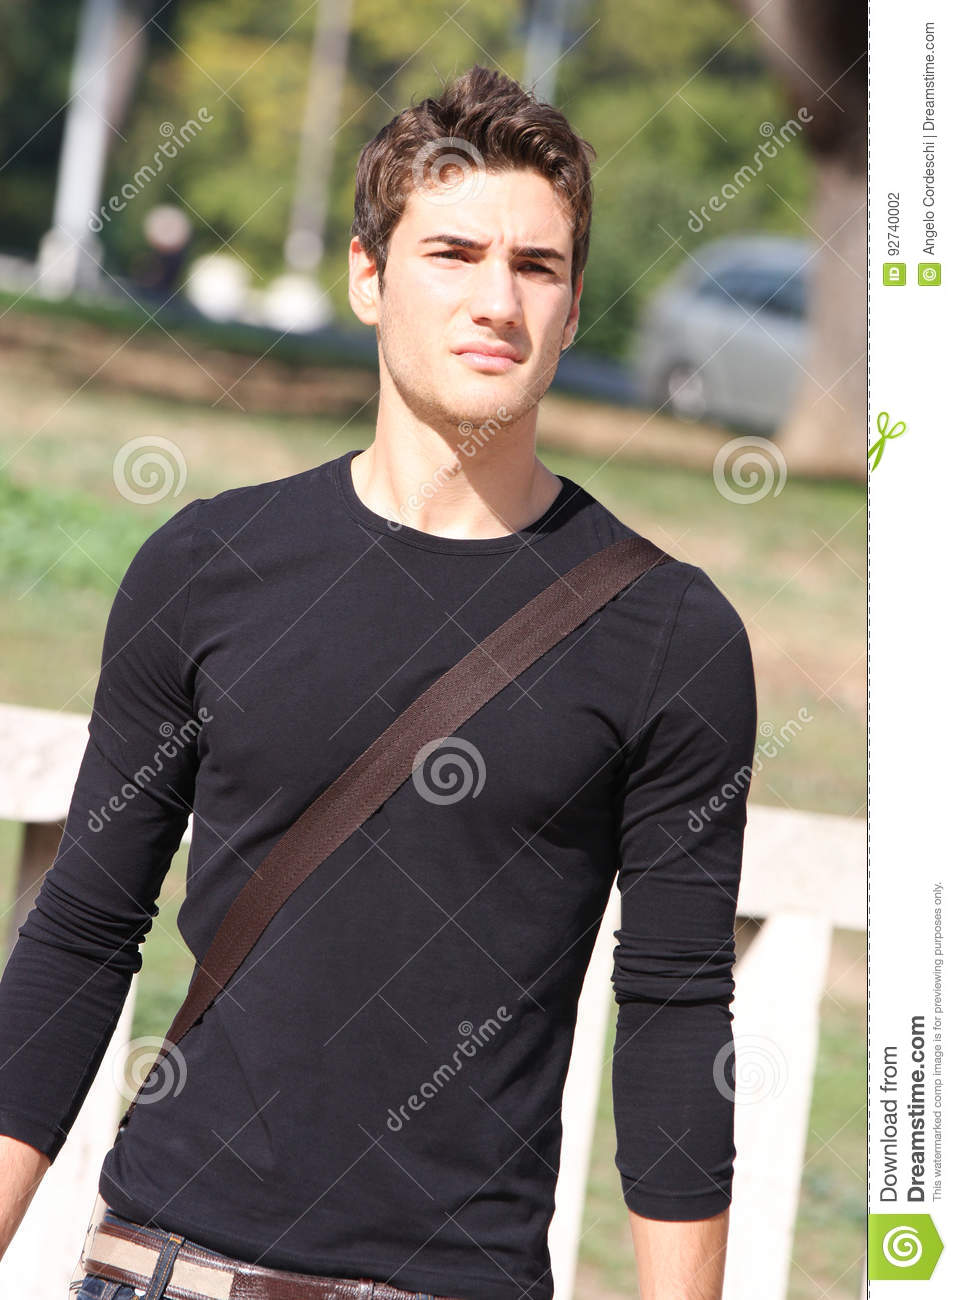 Cool and handsome young man outdoors. Modern hairstyle.